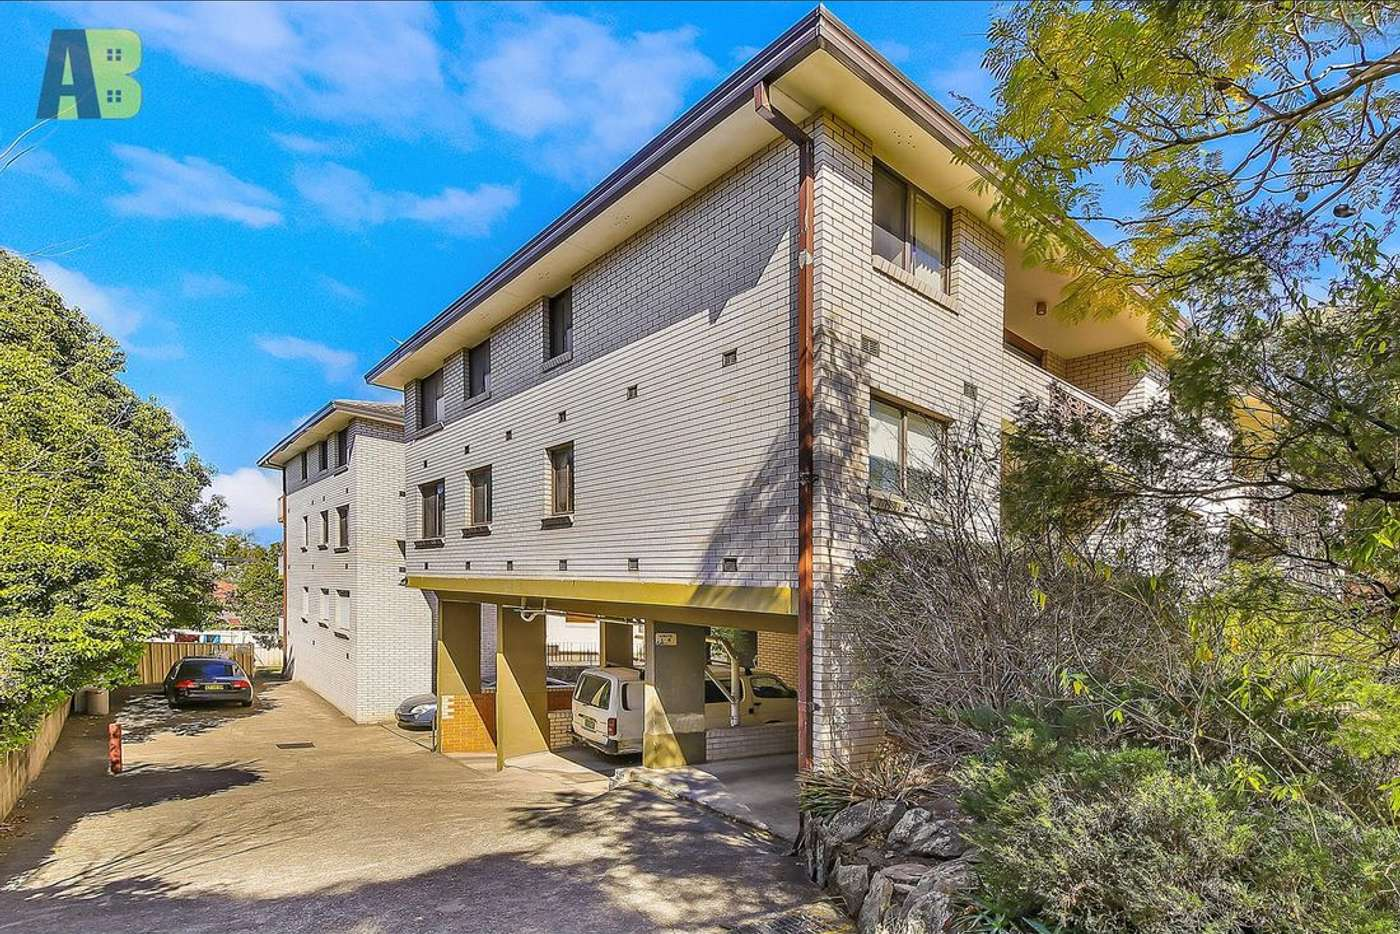 Main view of Homely house listing, 3/68 Meehan Street, Granville NSW 2142